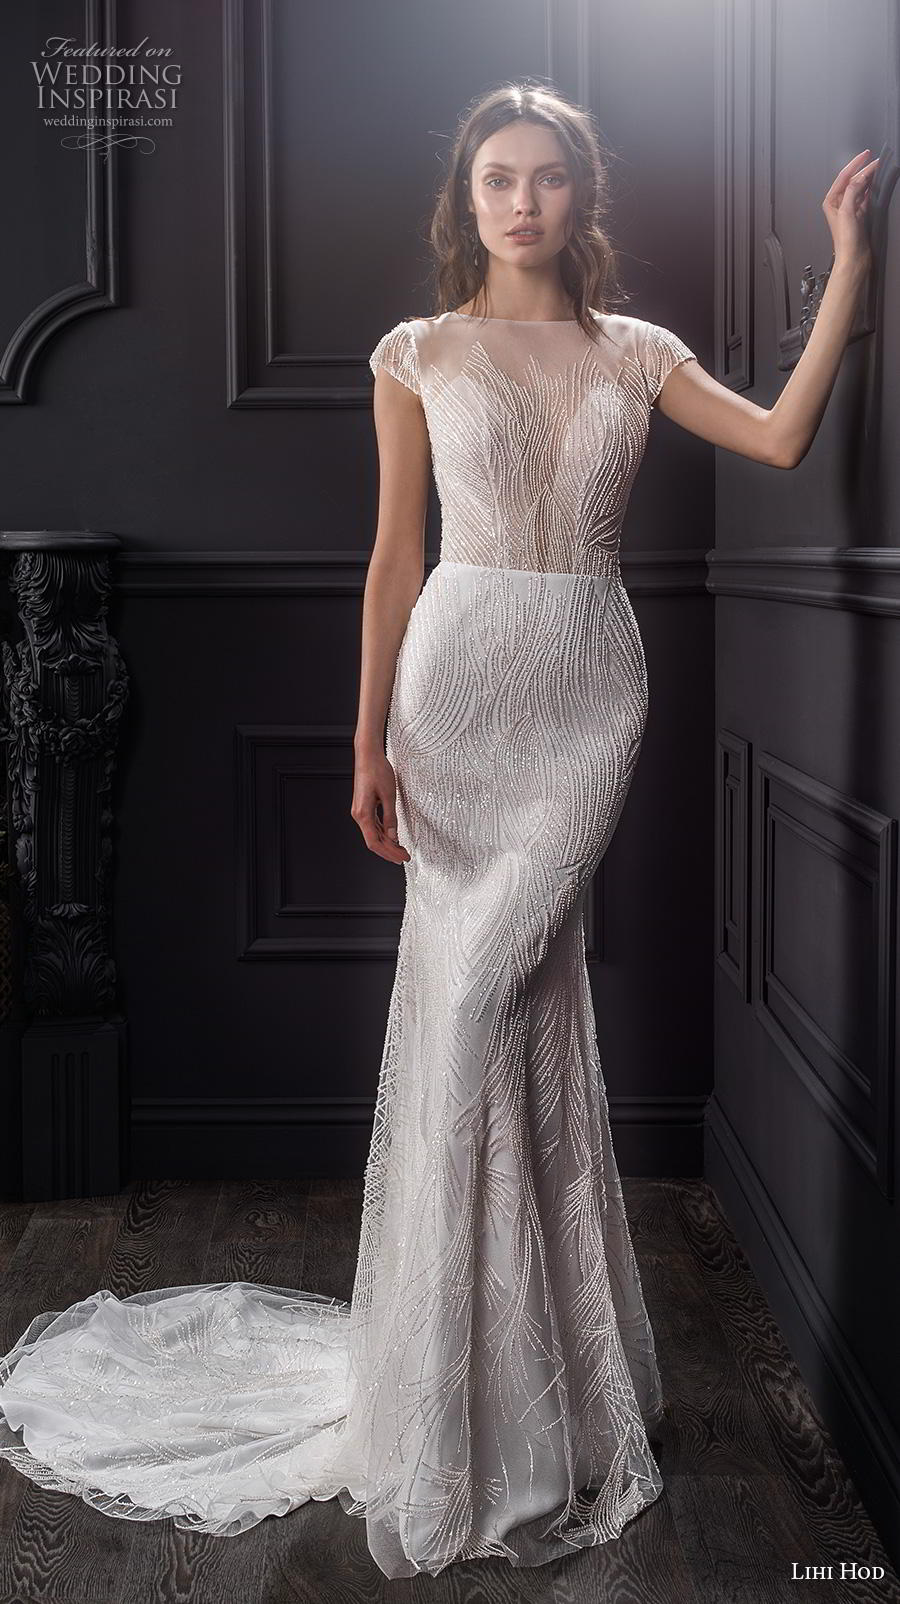 lihi hod spring 2020 bridal cap sleeves illusion bateau deep sweetheart neckline full embellishment elegant fit and flare sheath wedding dress backless low back chapel train (1) mv